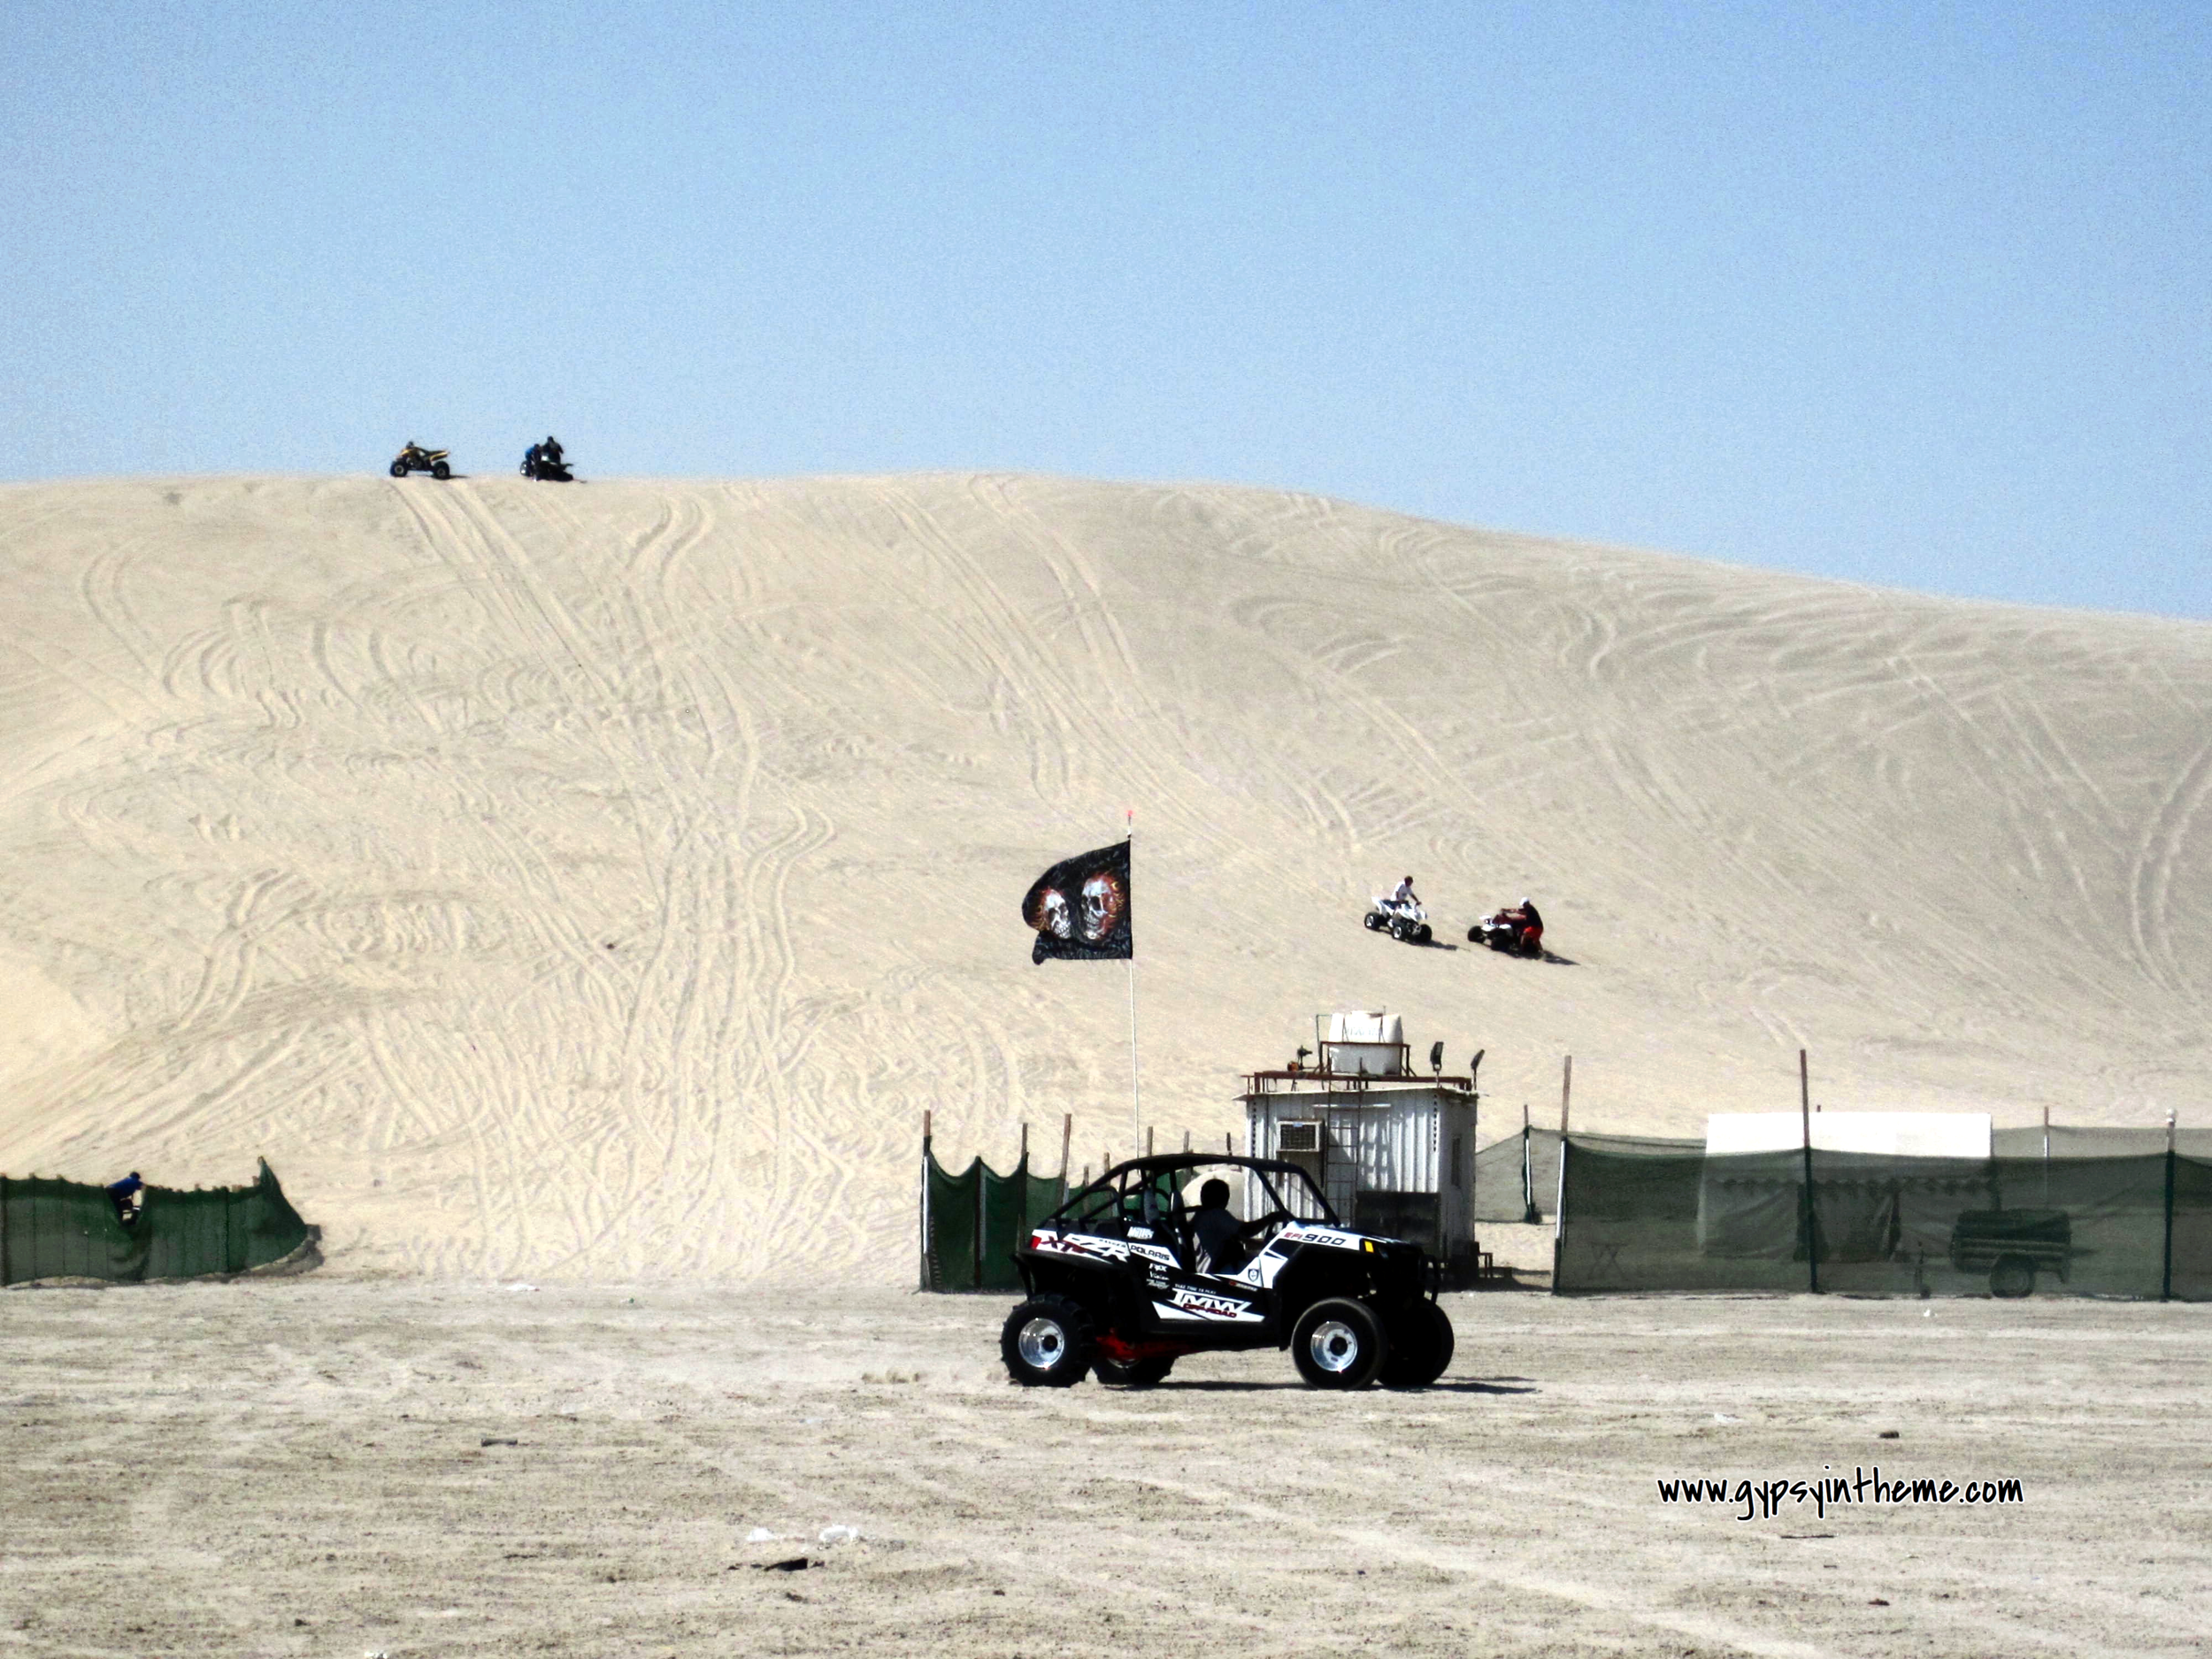 Desert campsite and sand duning.